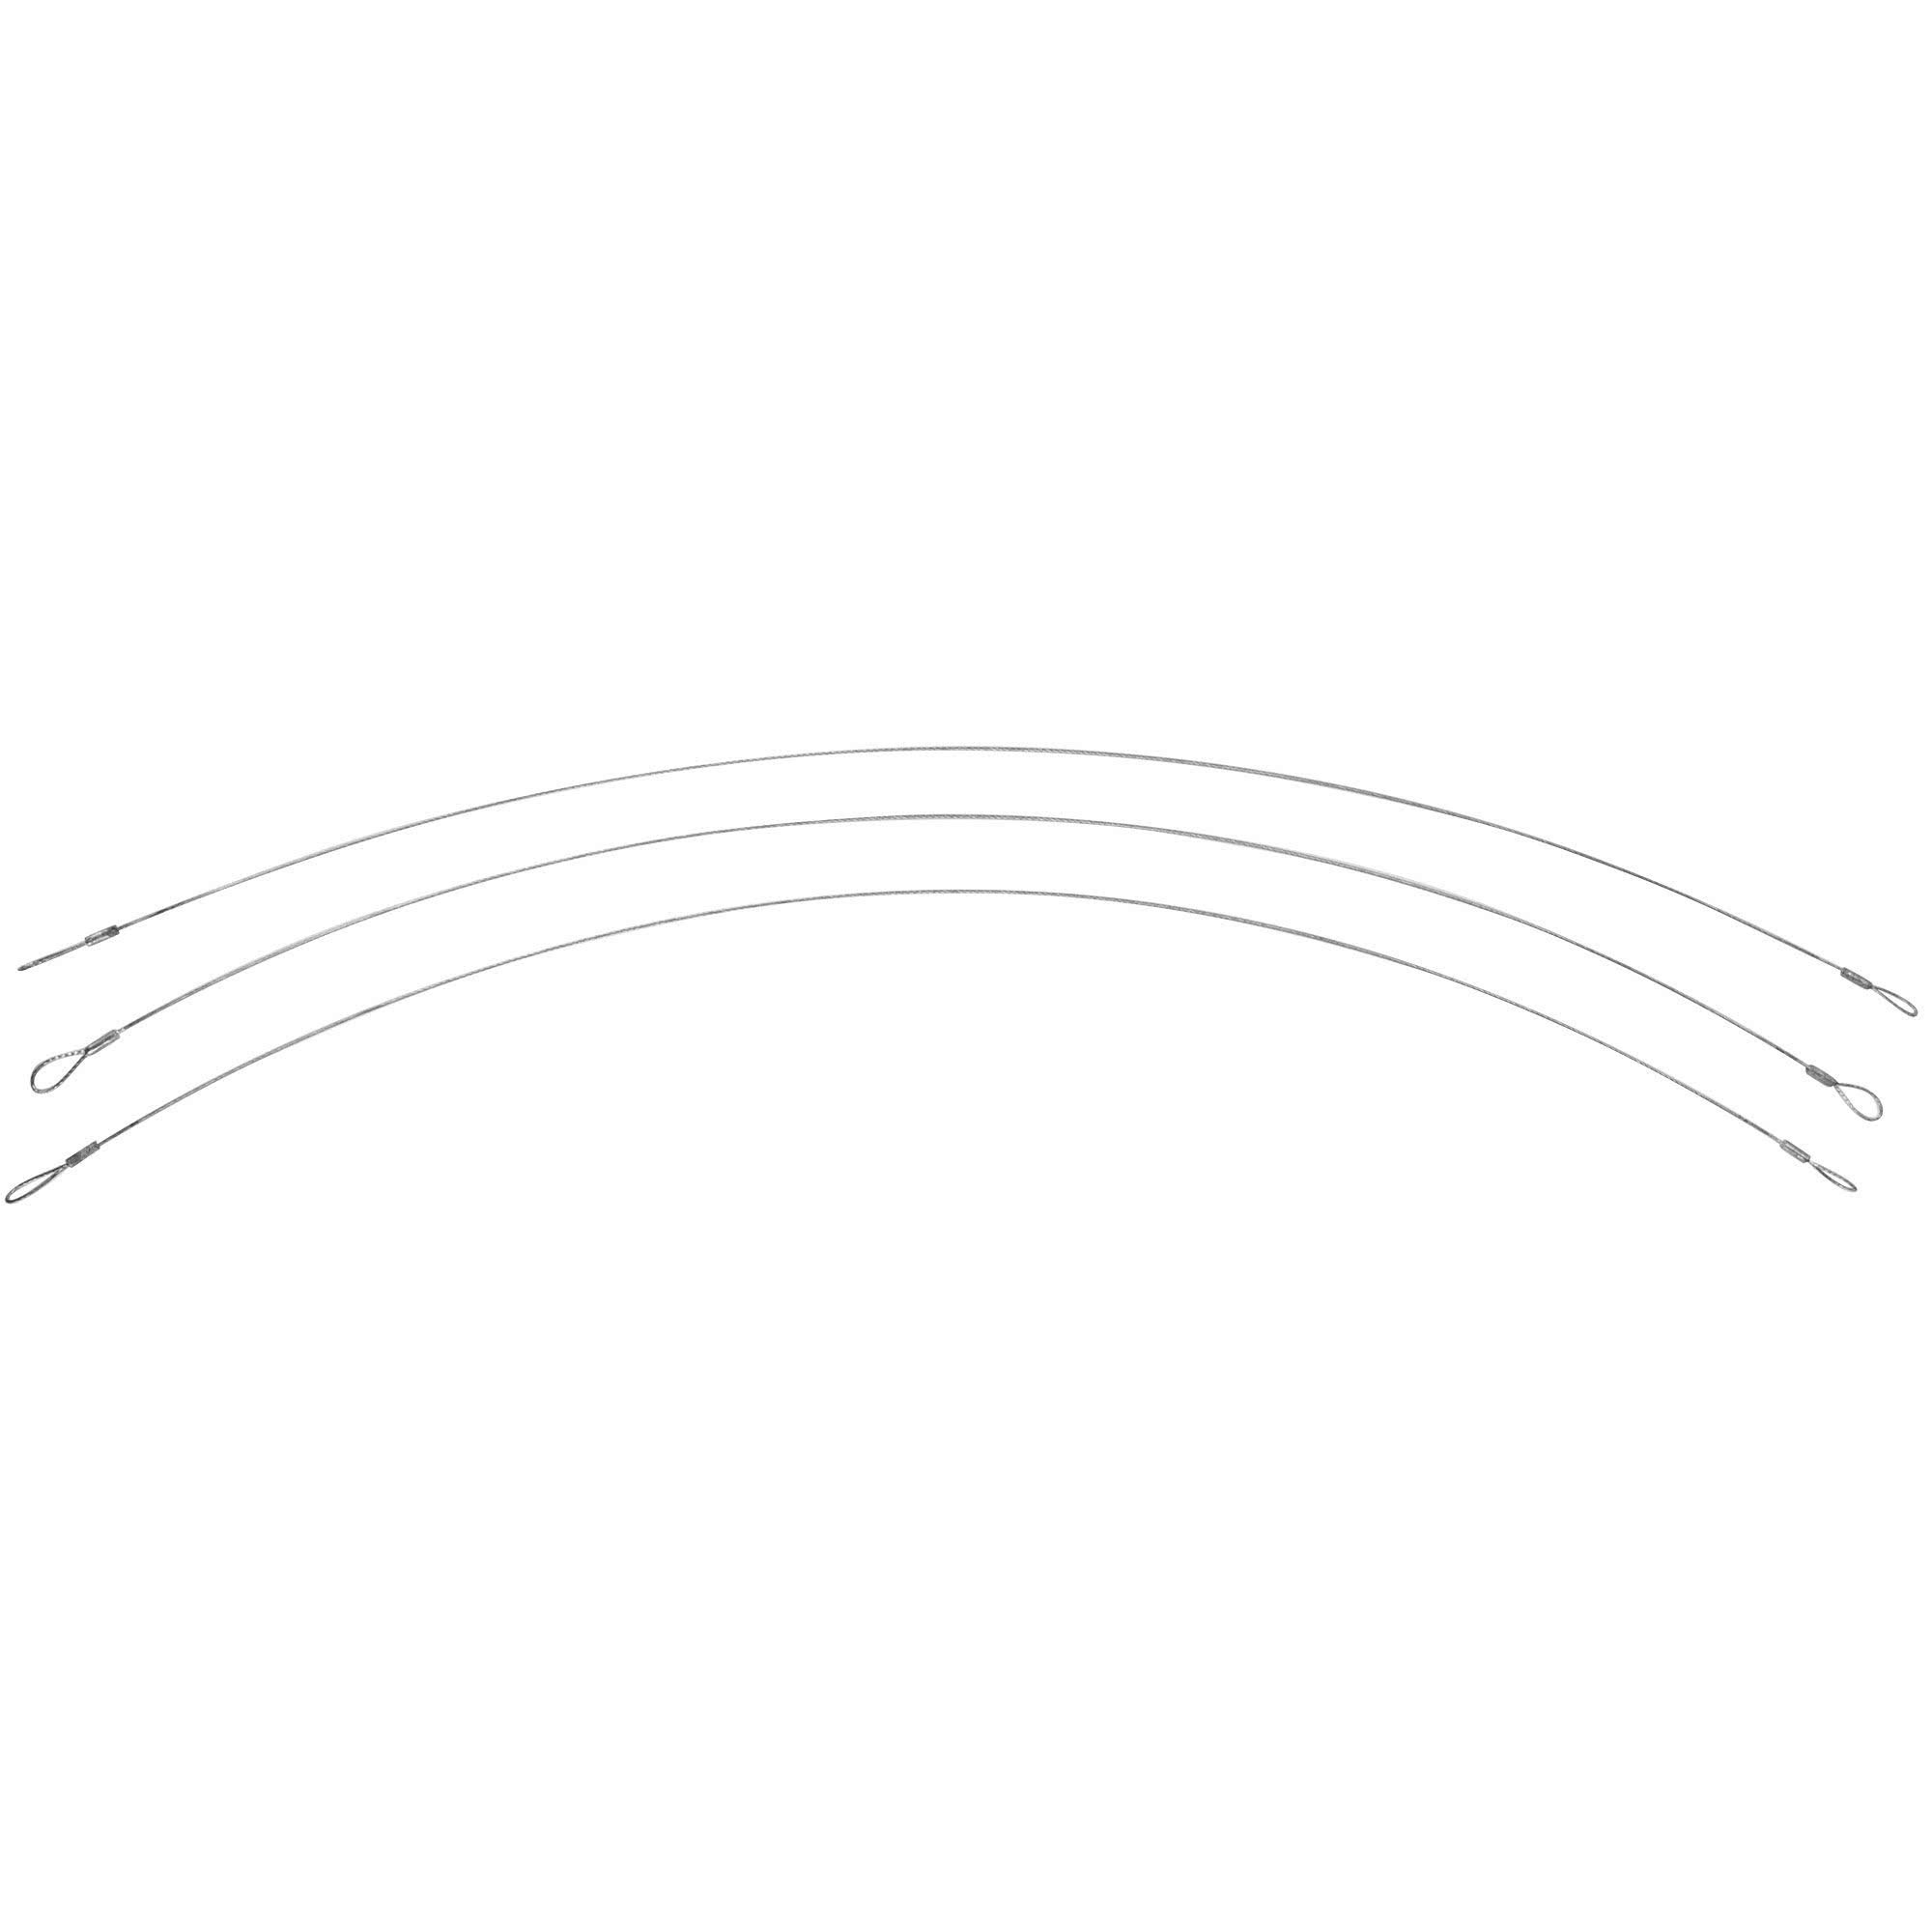 Nemco 55359-P3 Cutting Wire for Easy Cheese Blocker (Pack Of 3)